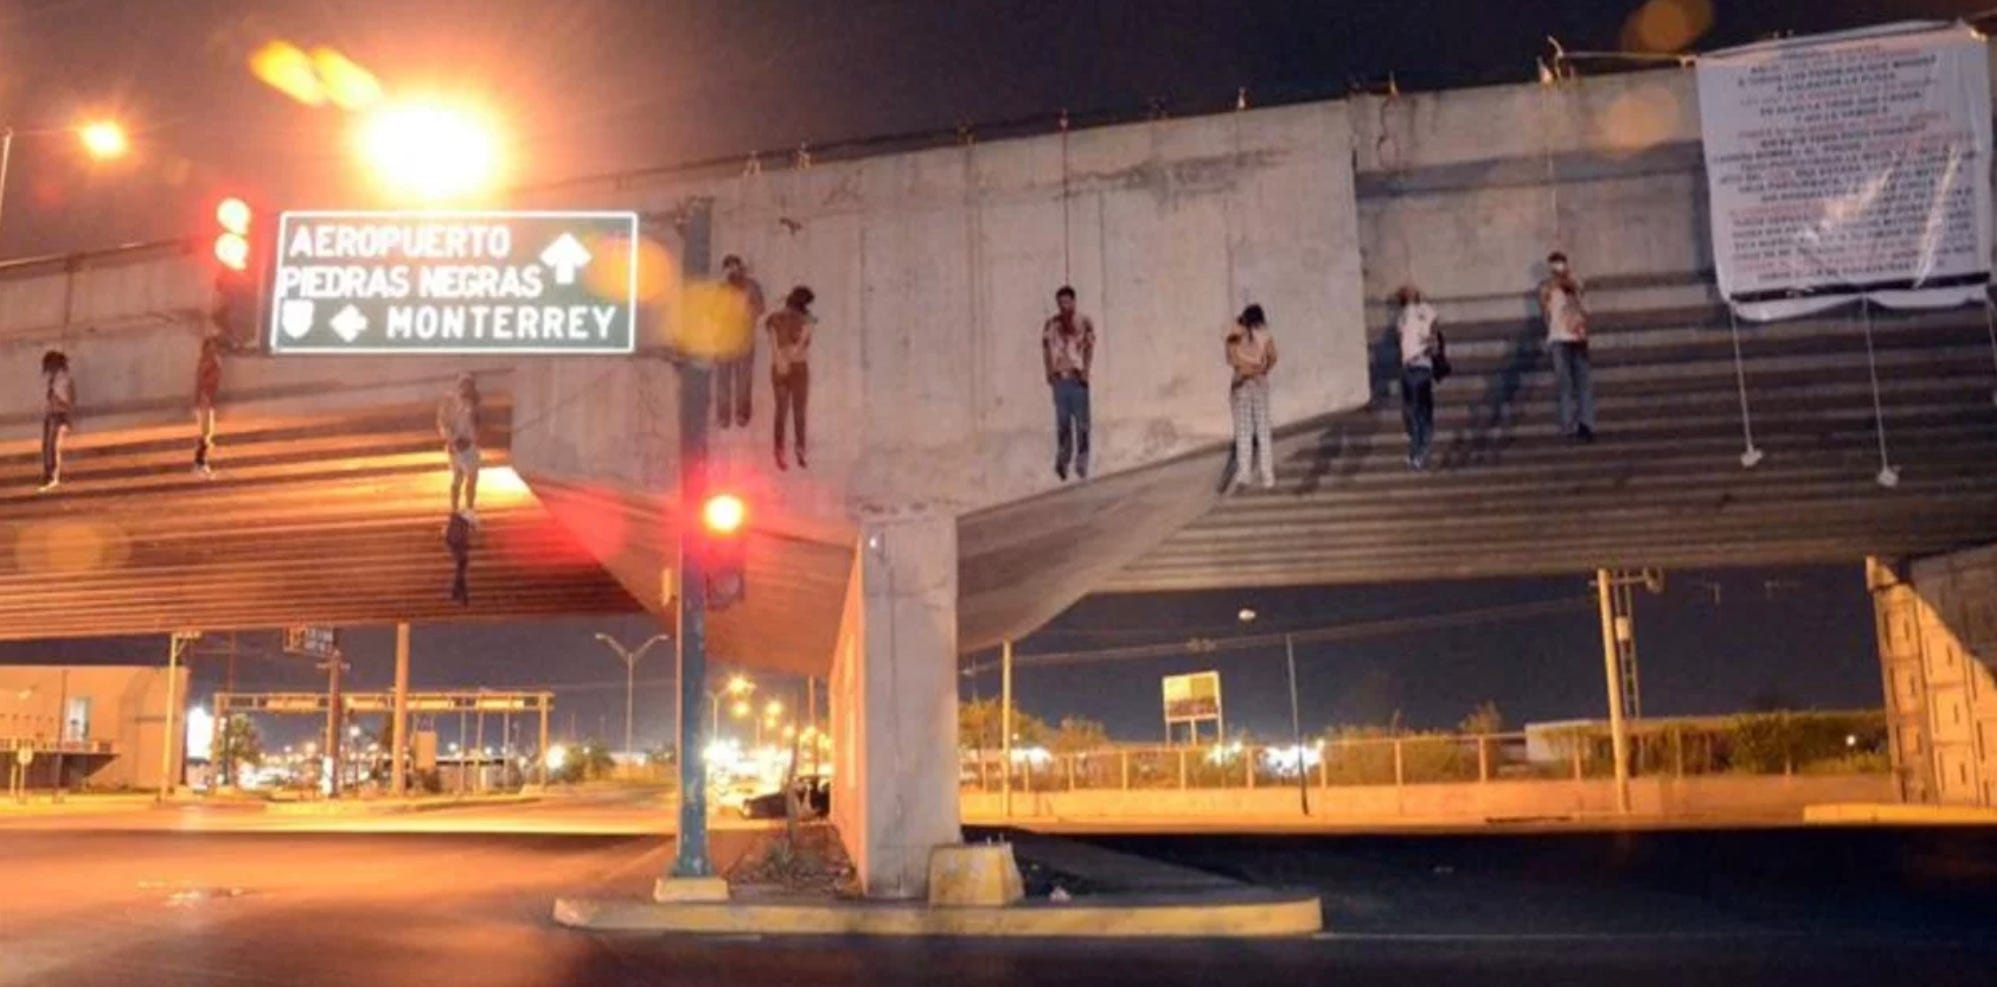 Nine bodies were left hanging from a busy stretch of highway near Nueva Laredo, Mexico. CJNG hung a banner, at right, taking credit.